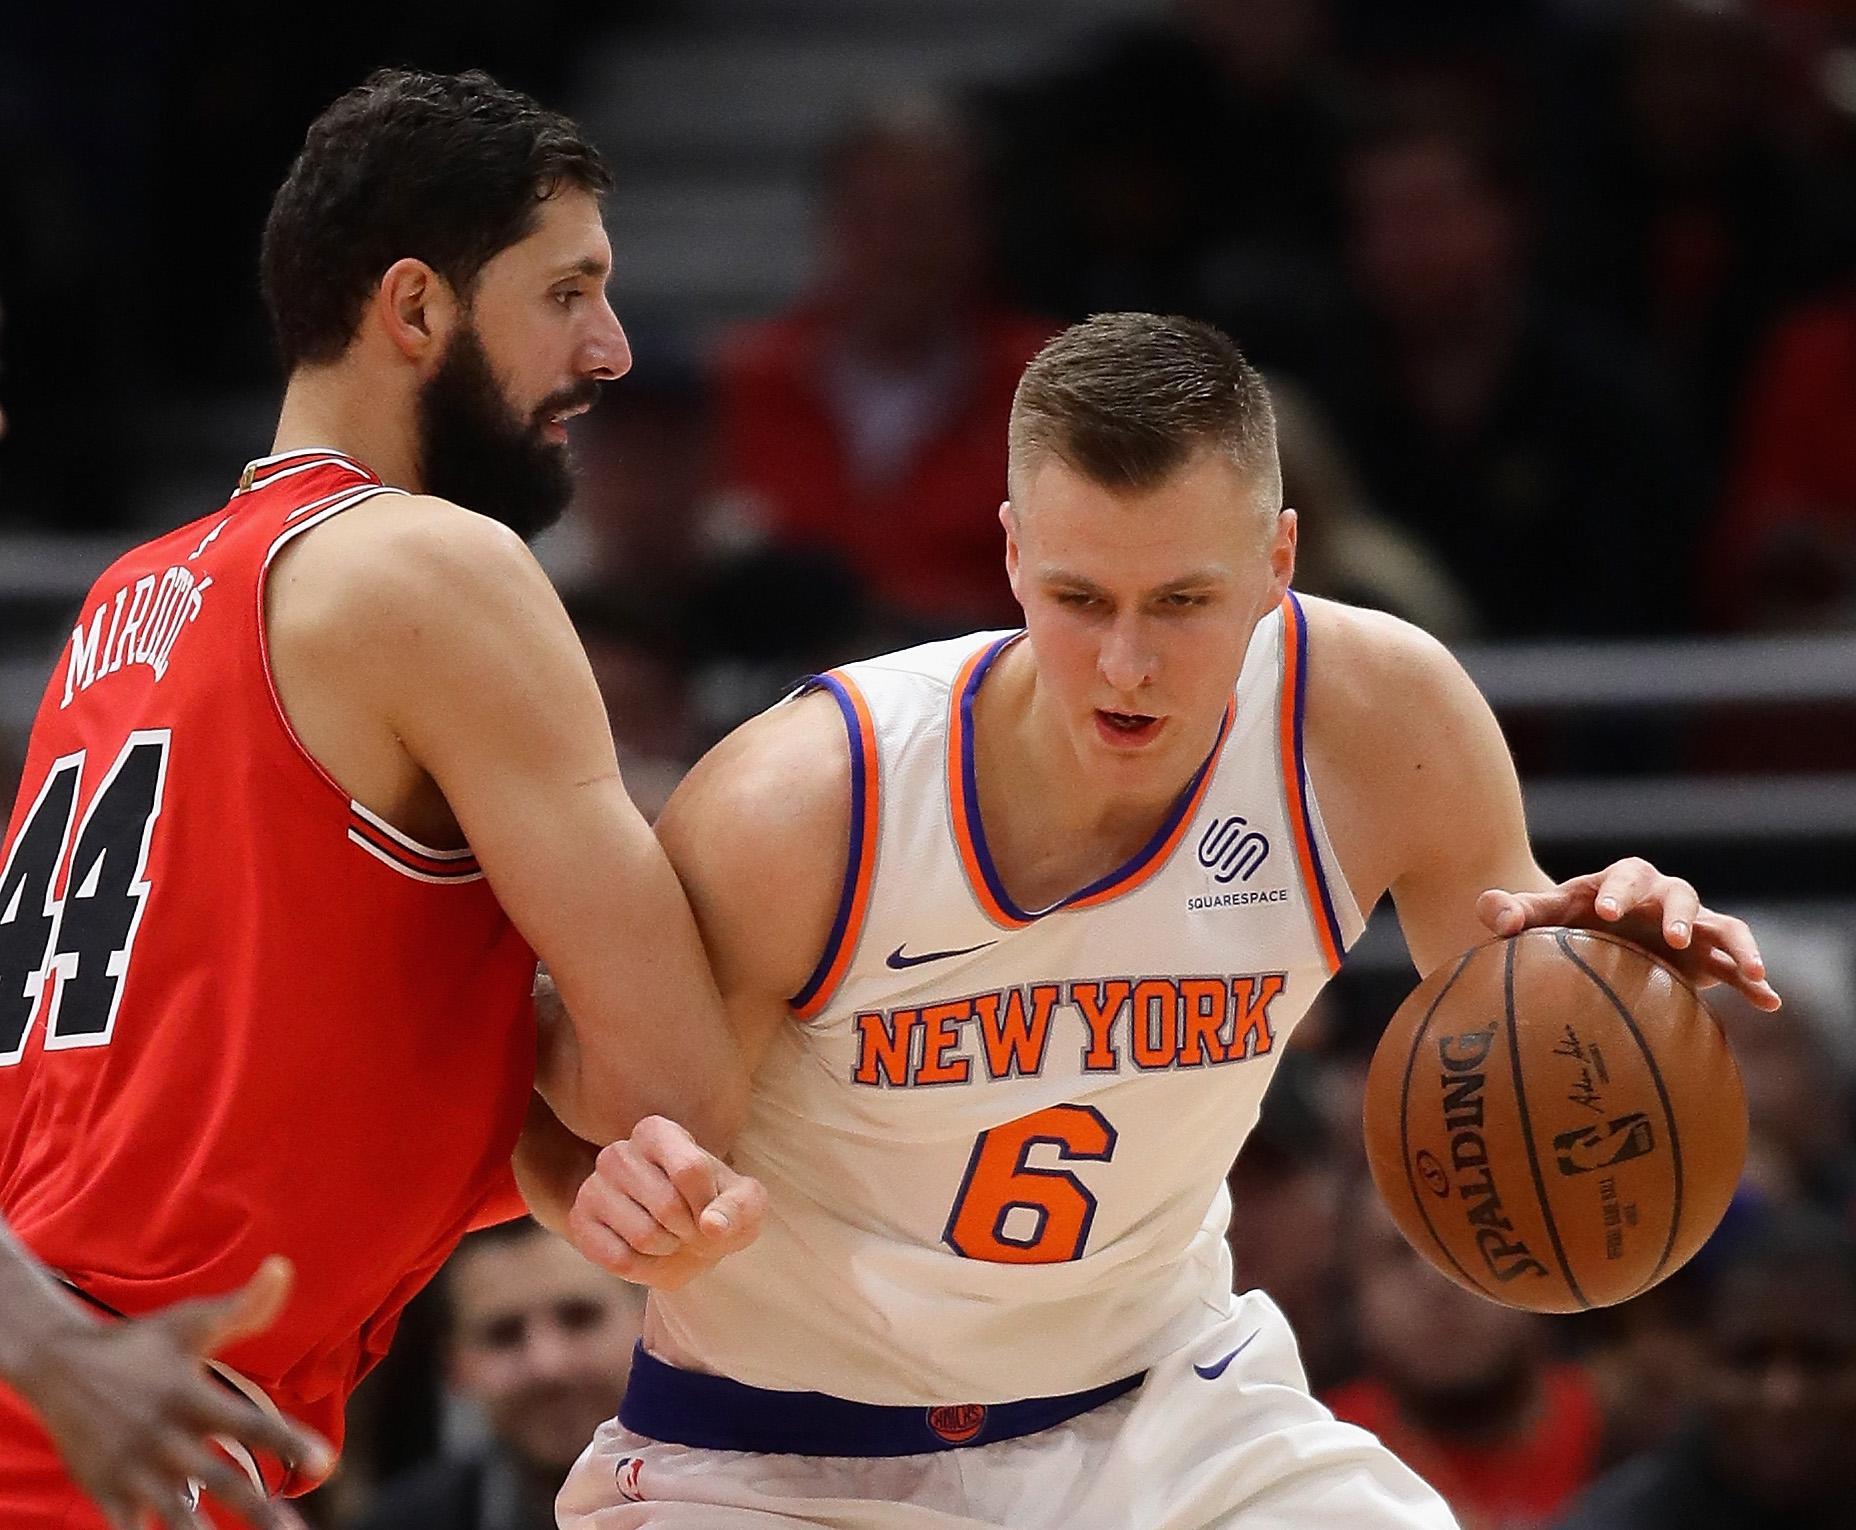 Bulls beat Knicks in exciting double overtime, 122-119